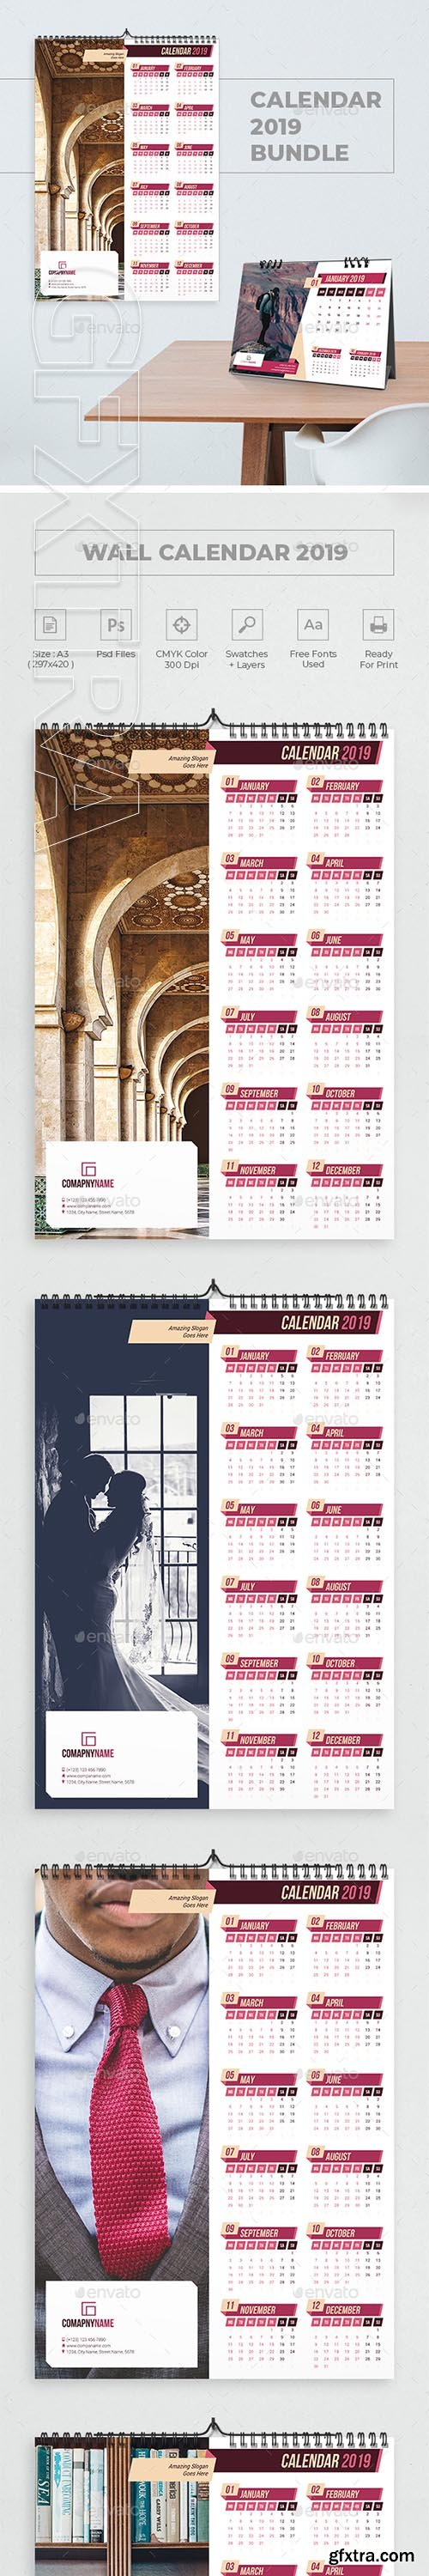 GraphicRiver - Calendar 2019 Bundle 6 22929965